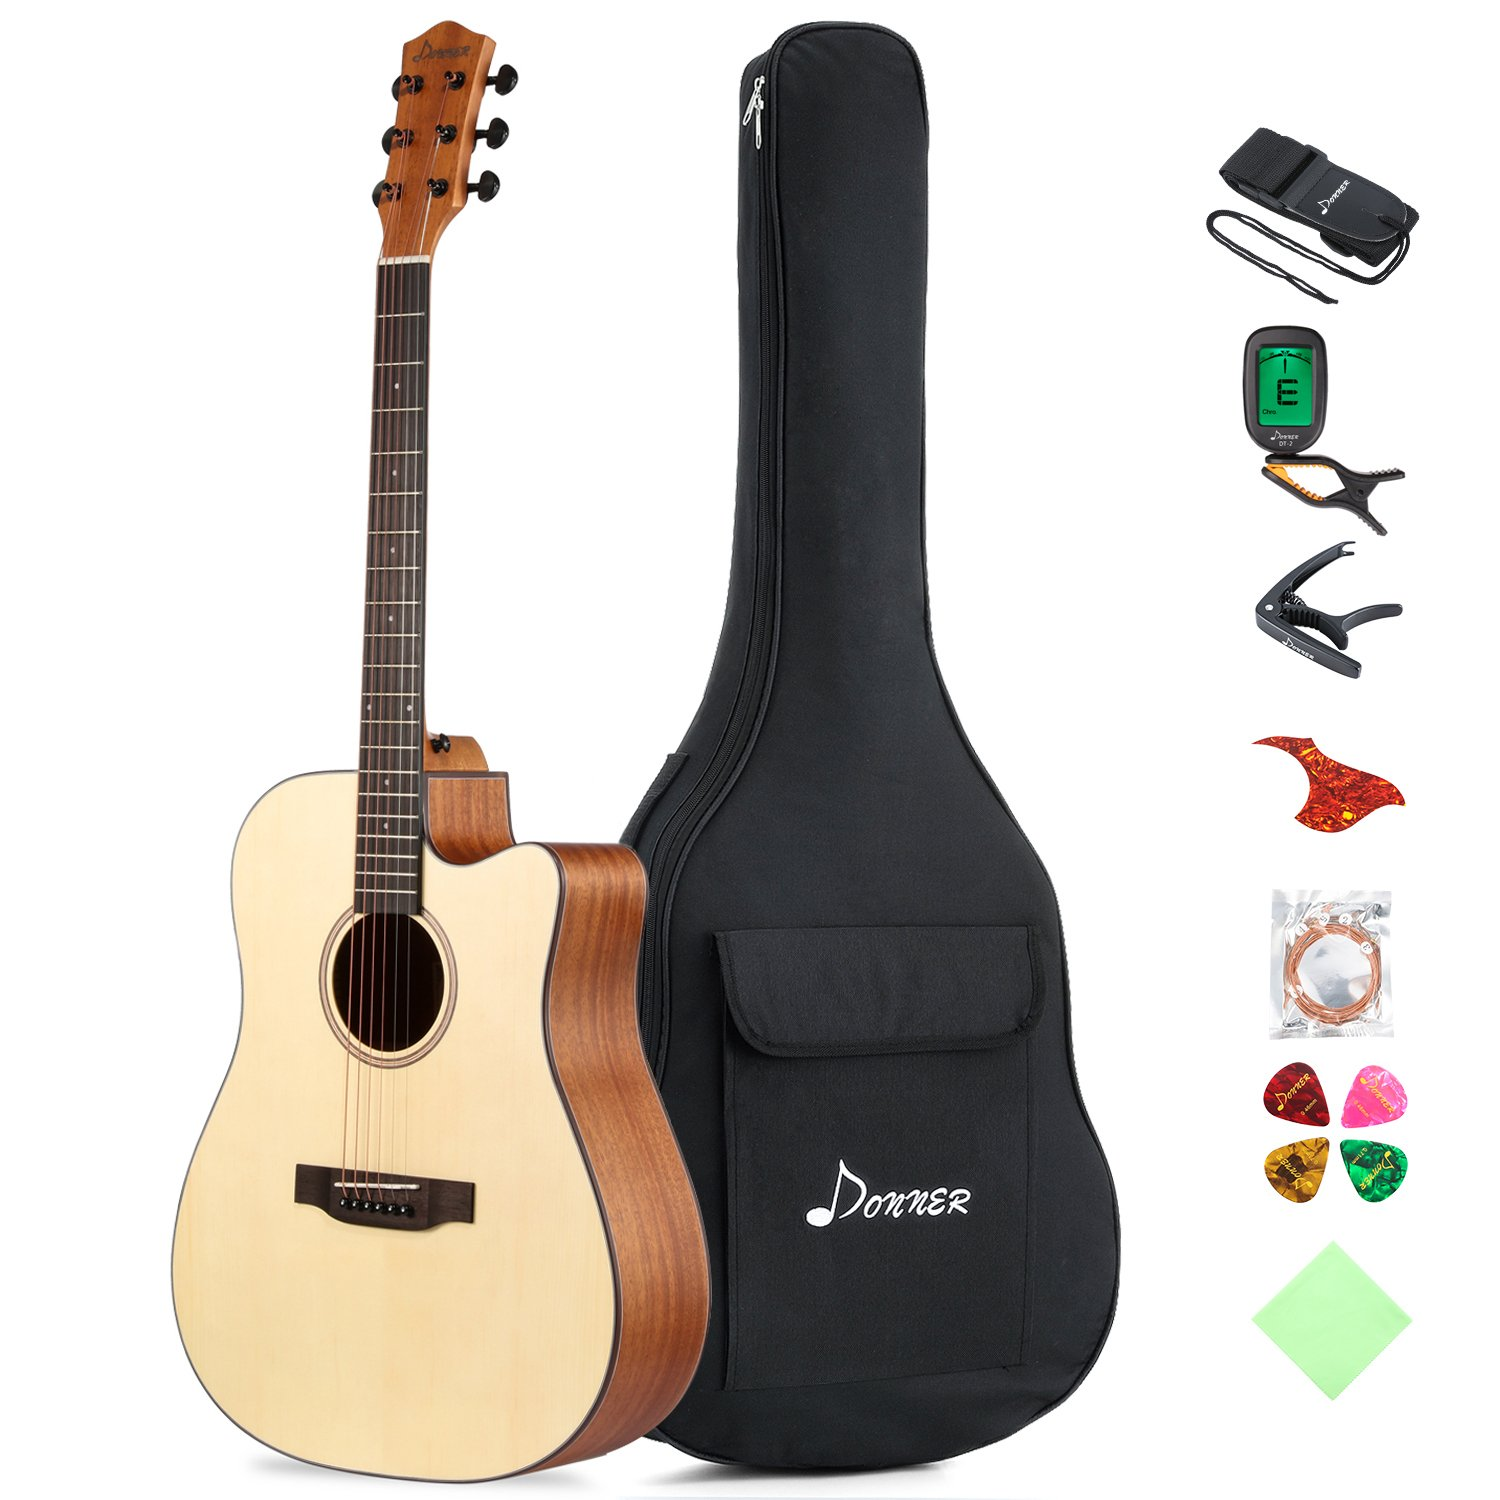 Donner Sunburst Acoustic Guitar Package DAG-1S Beginner Guitar Dreadnought With Bag Tuner Strap String Picks EC1019